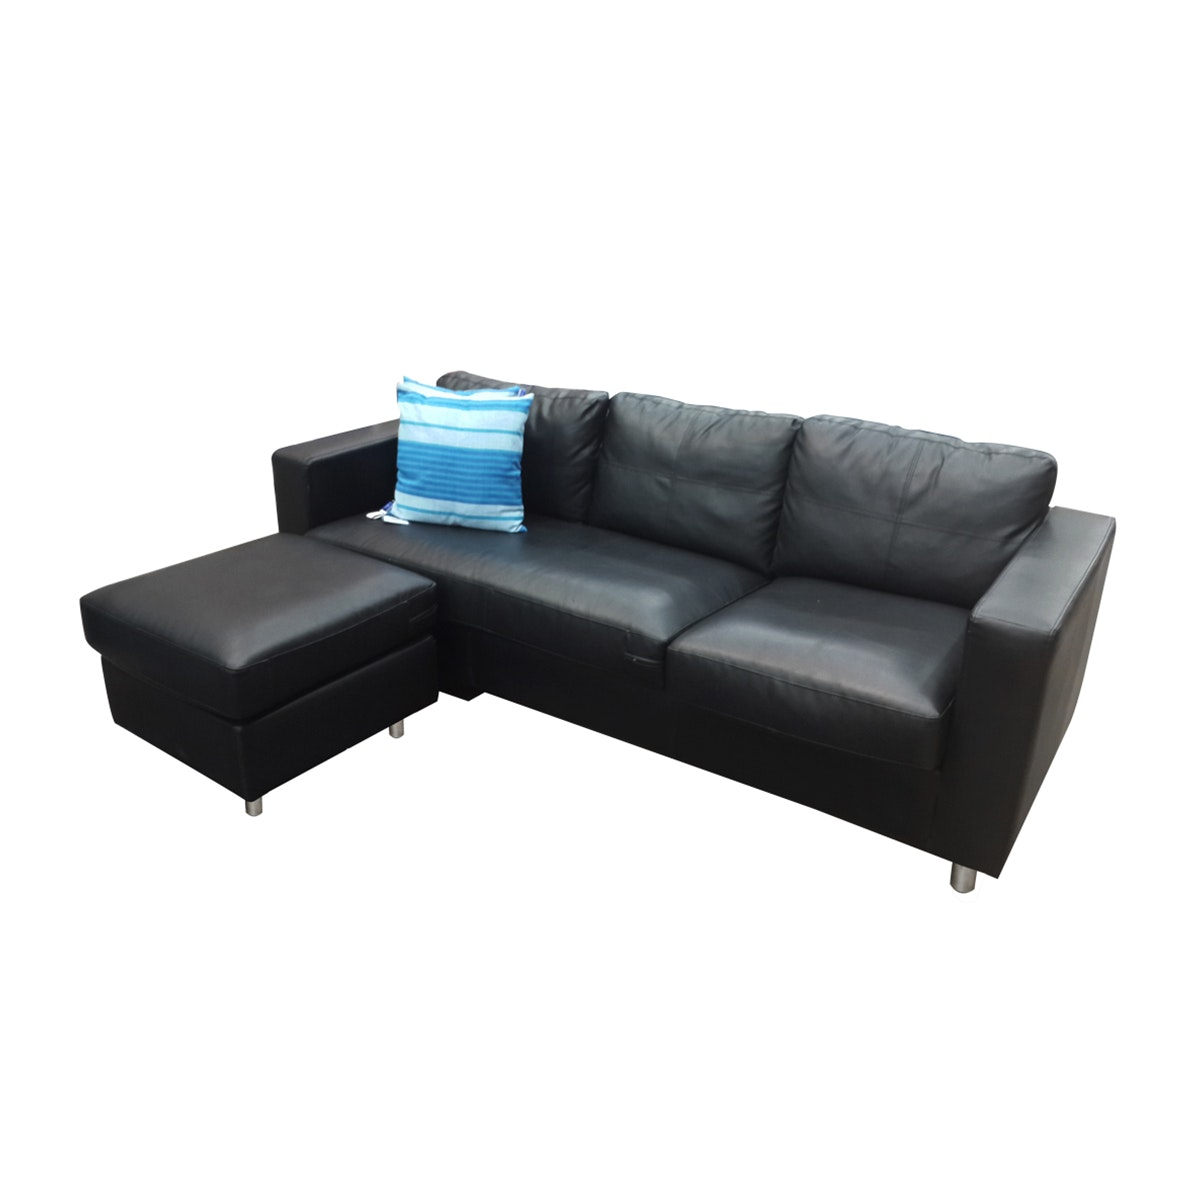 JYSK Nordic Sofa Black 3-Seater Chusion For Puff